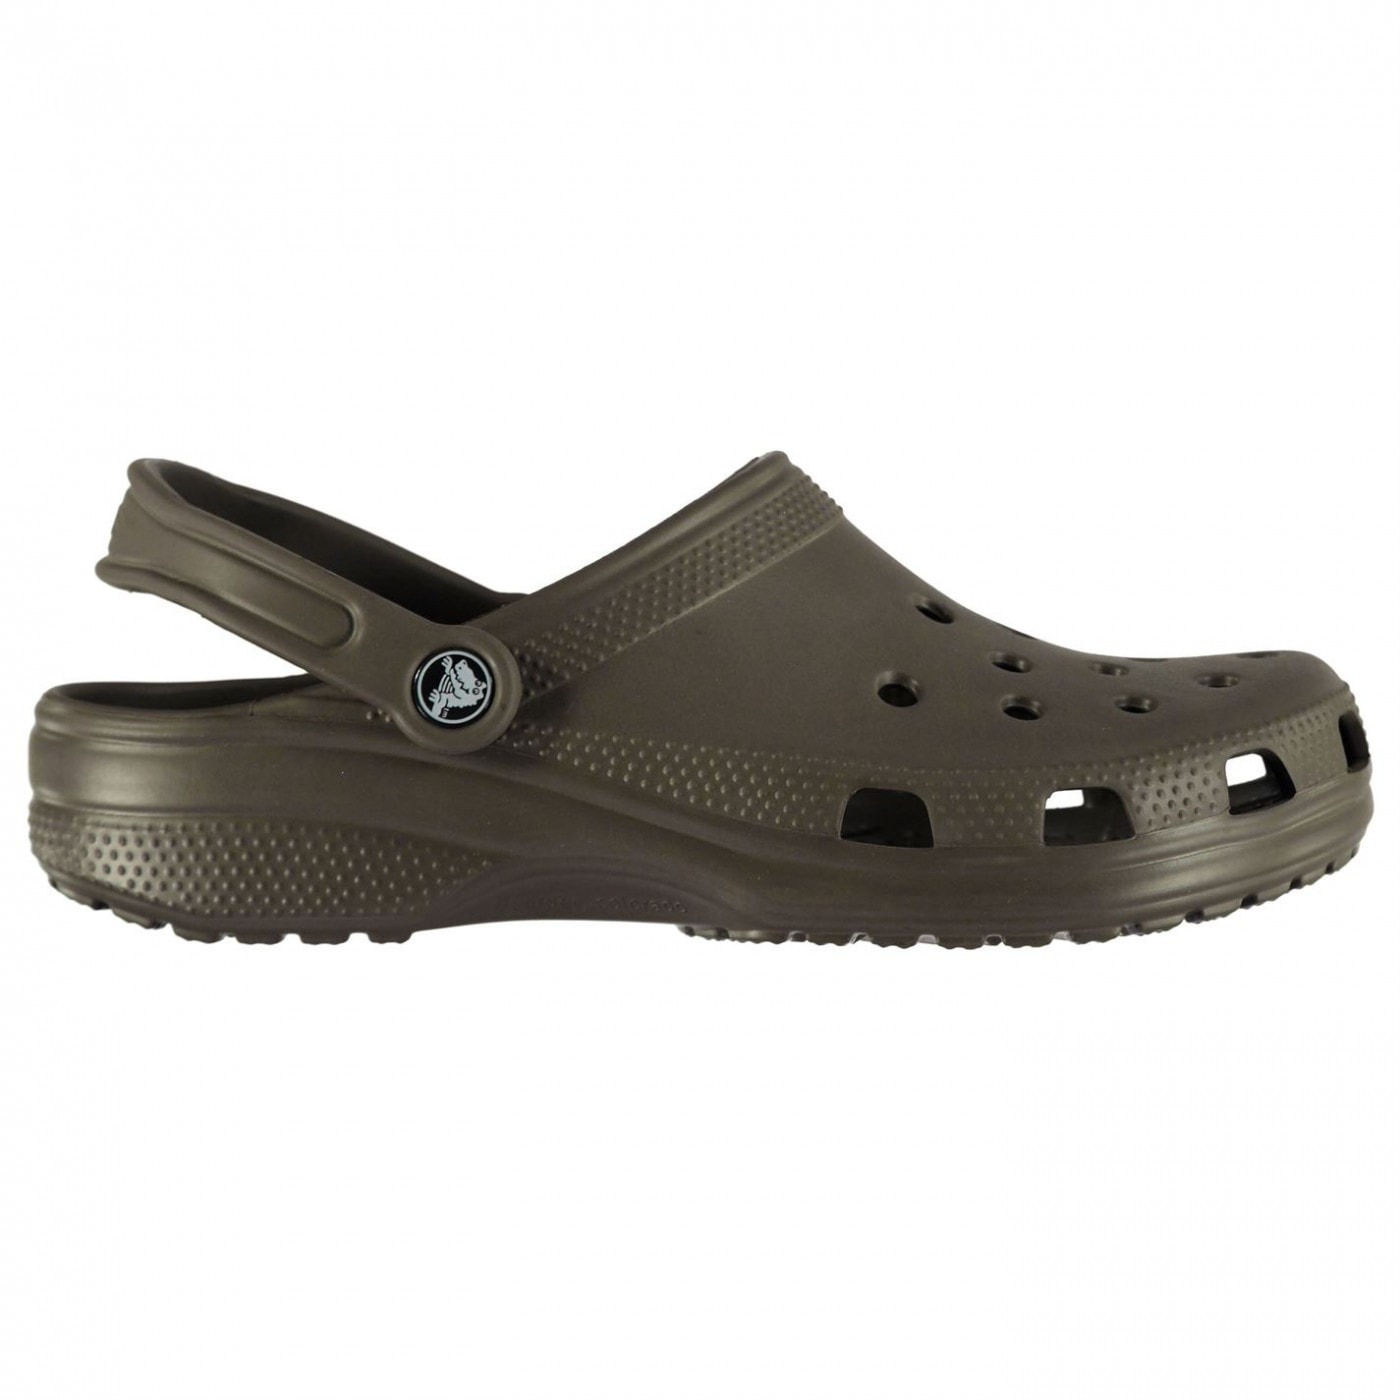 Crocs Baya Mens Sandals